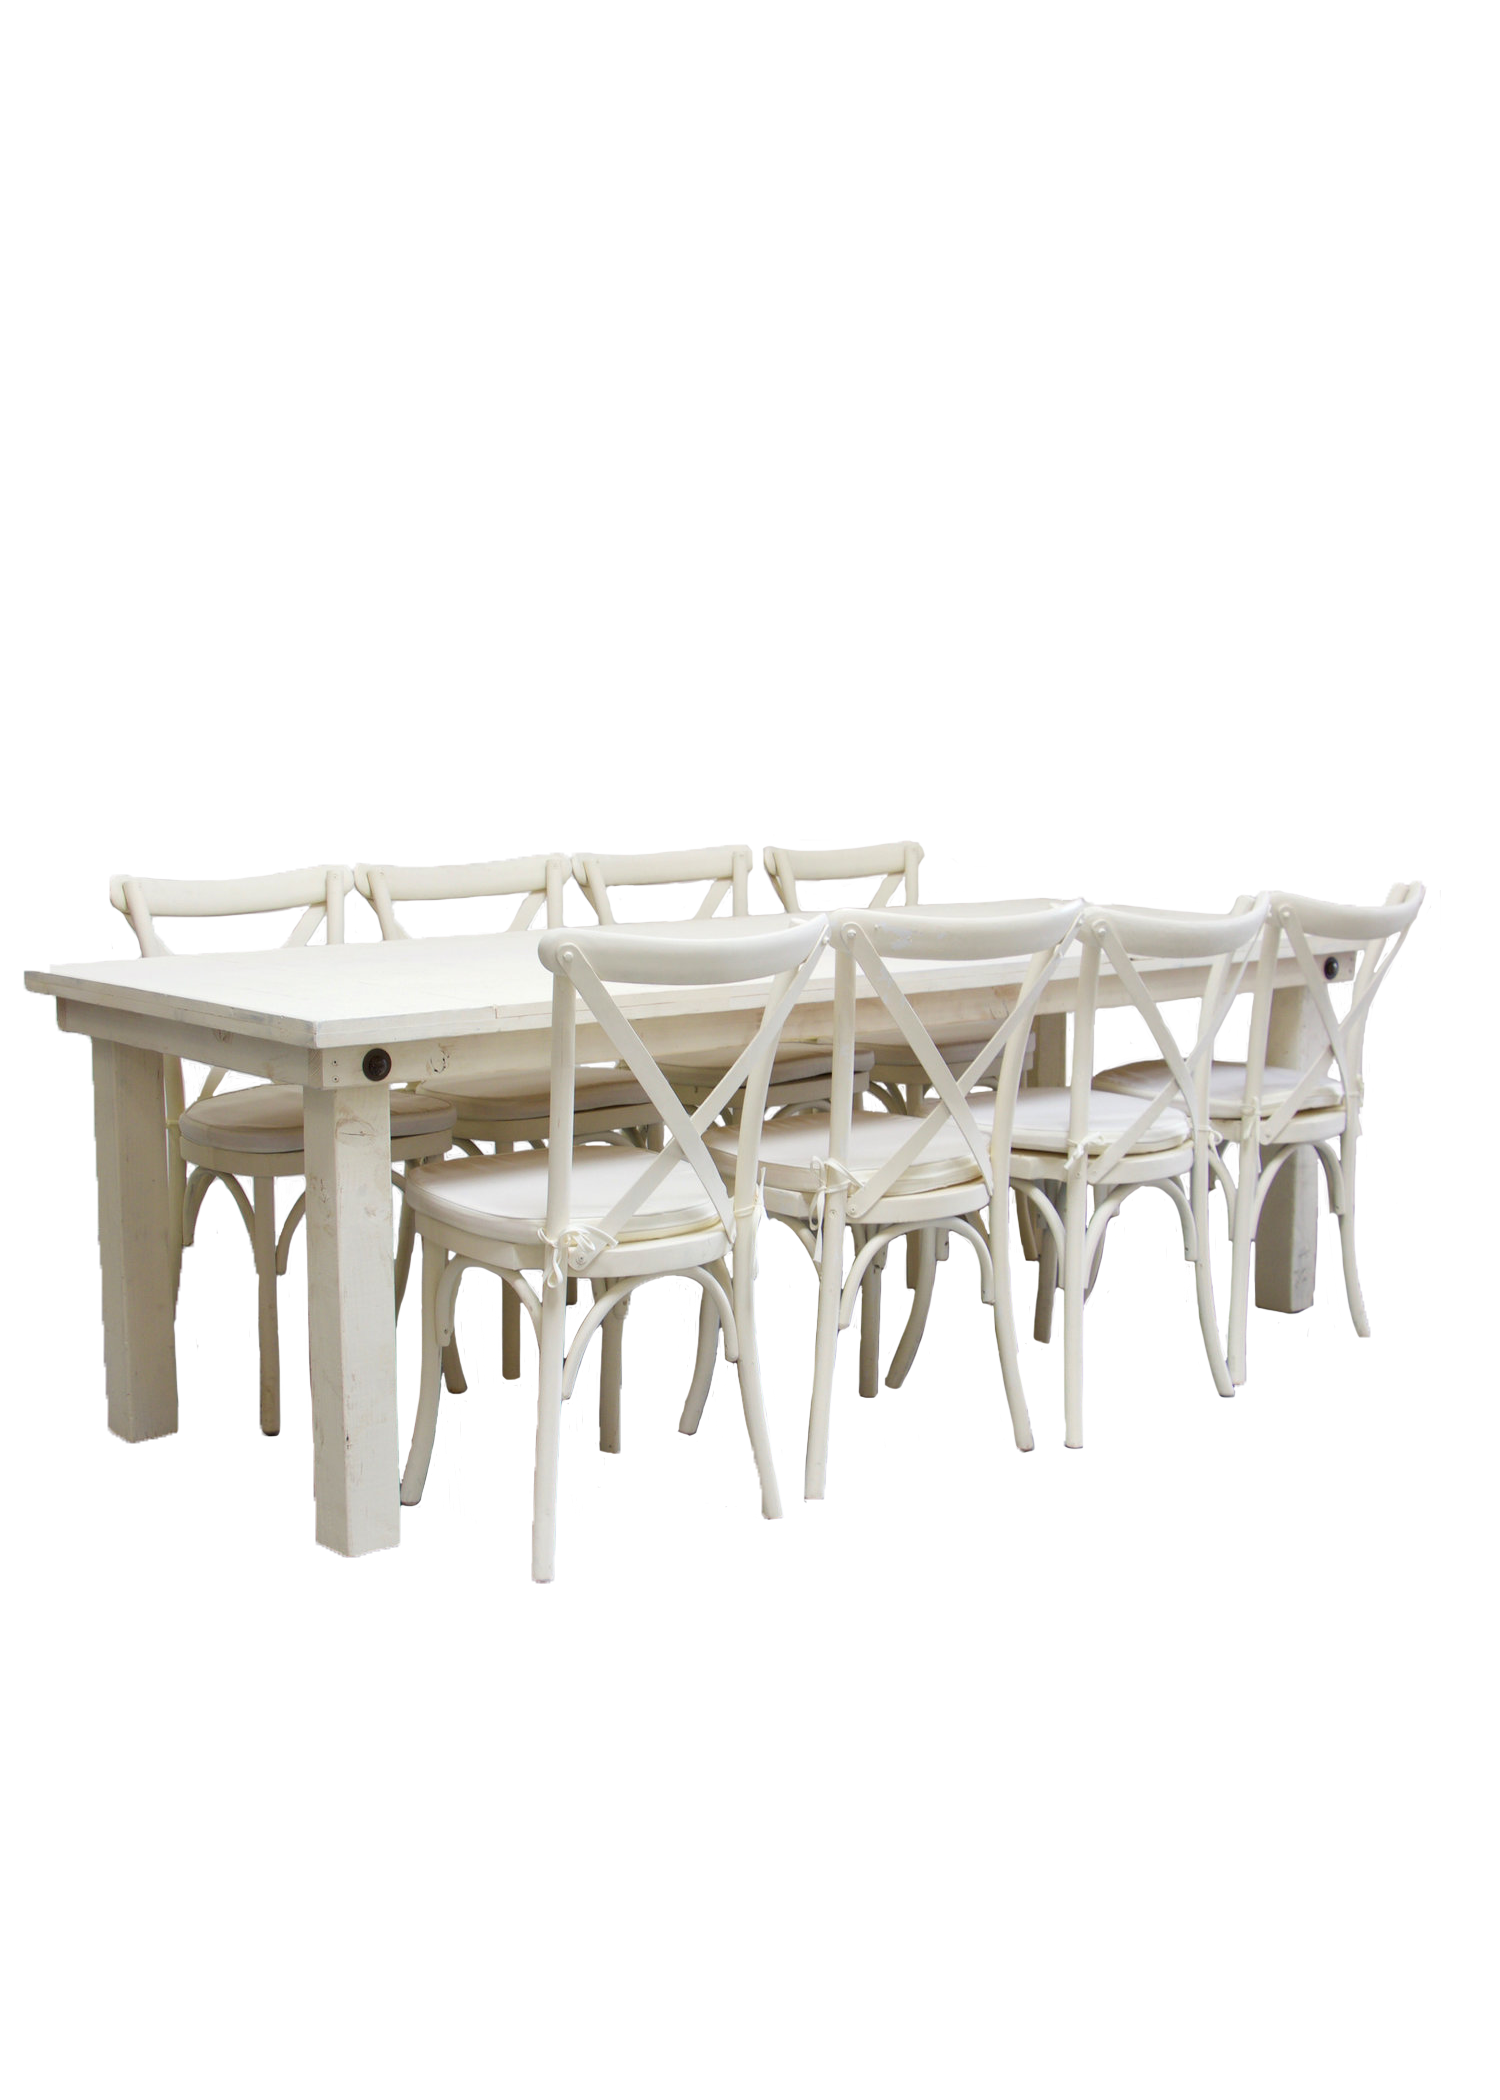 Vintage White Farm Table with 8 Cross-Back Chairs $145